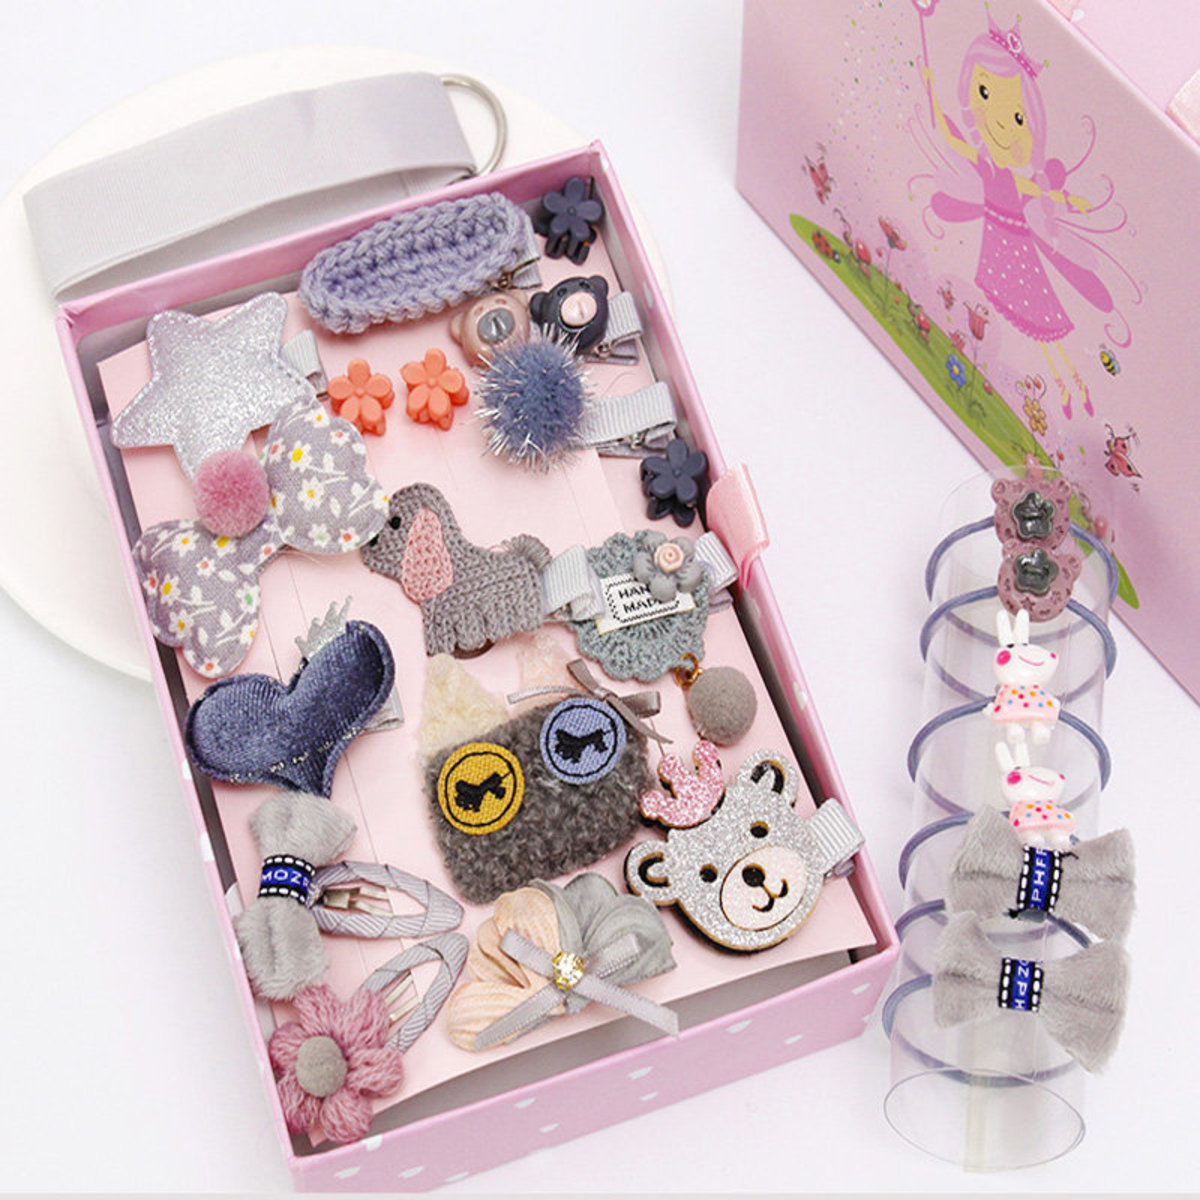 24 pieces Princess Style Hair Accessories Gift Set - Grey Bear